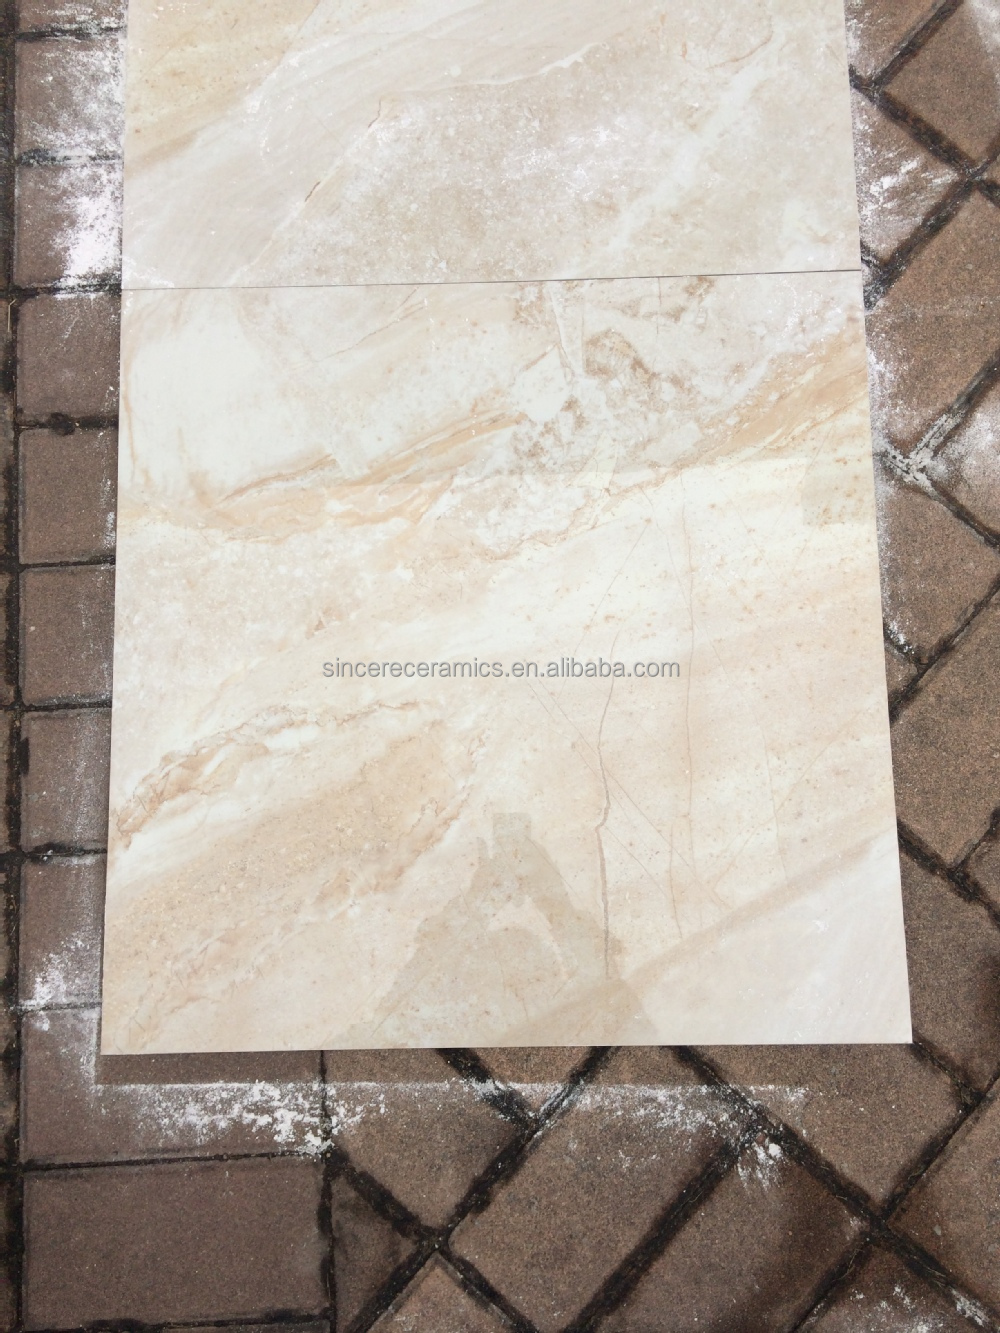 Promotion China Supplier Foshan Ceramic Tiles 800x800